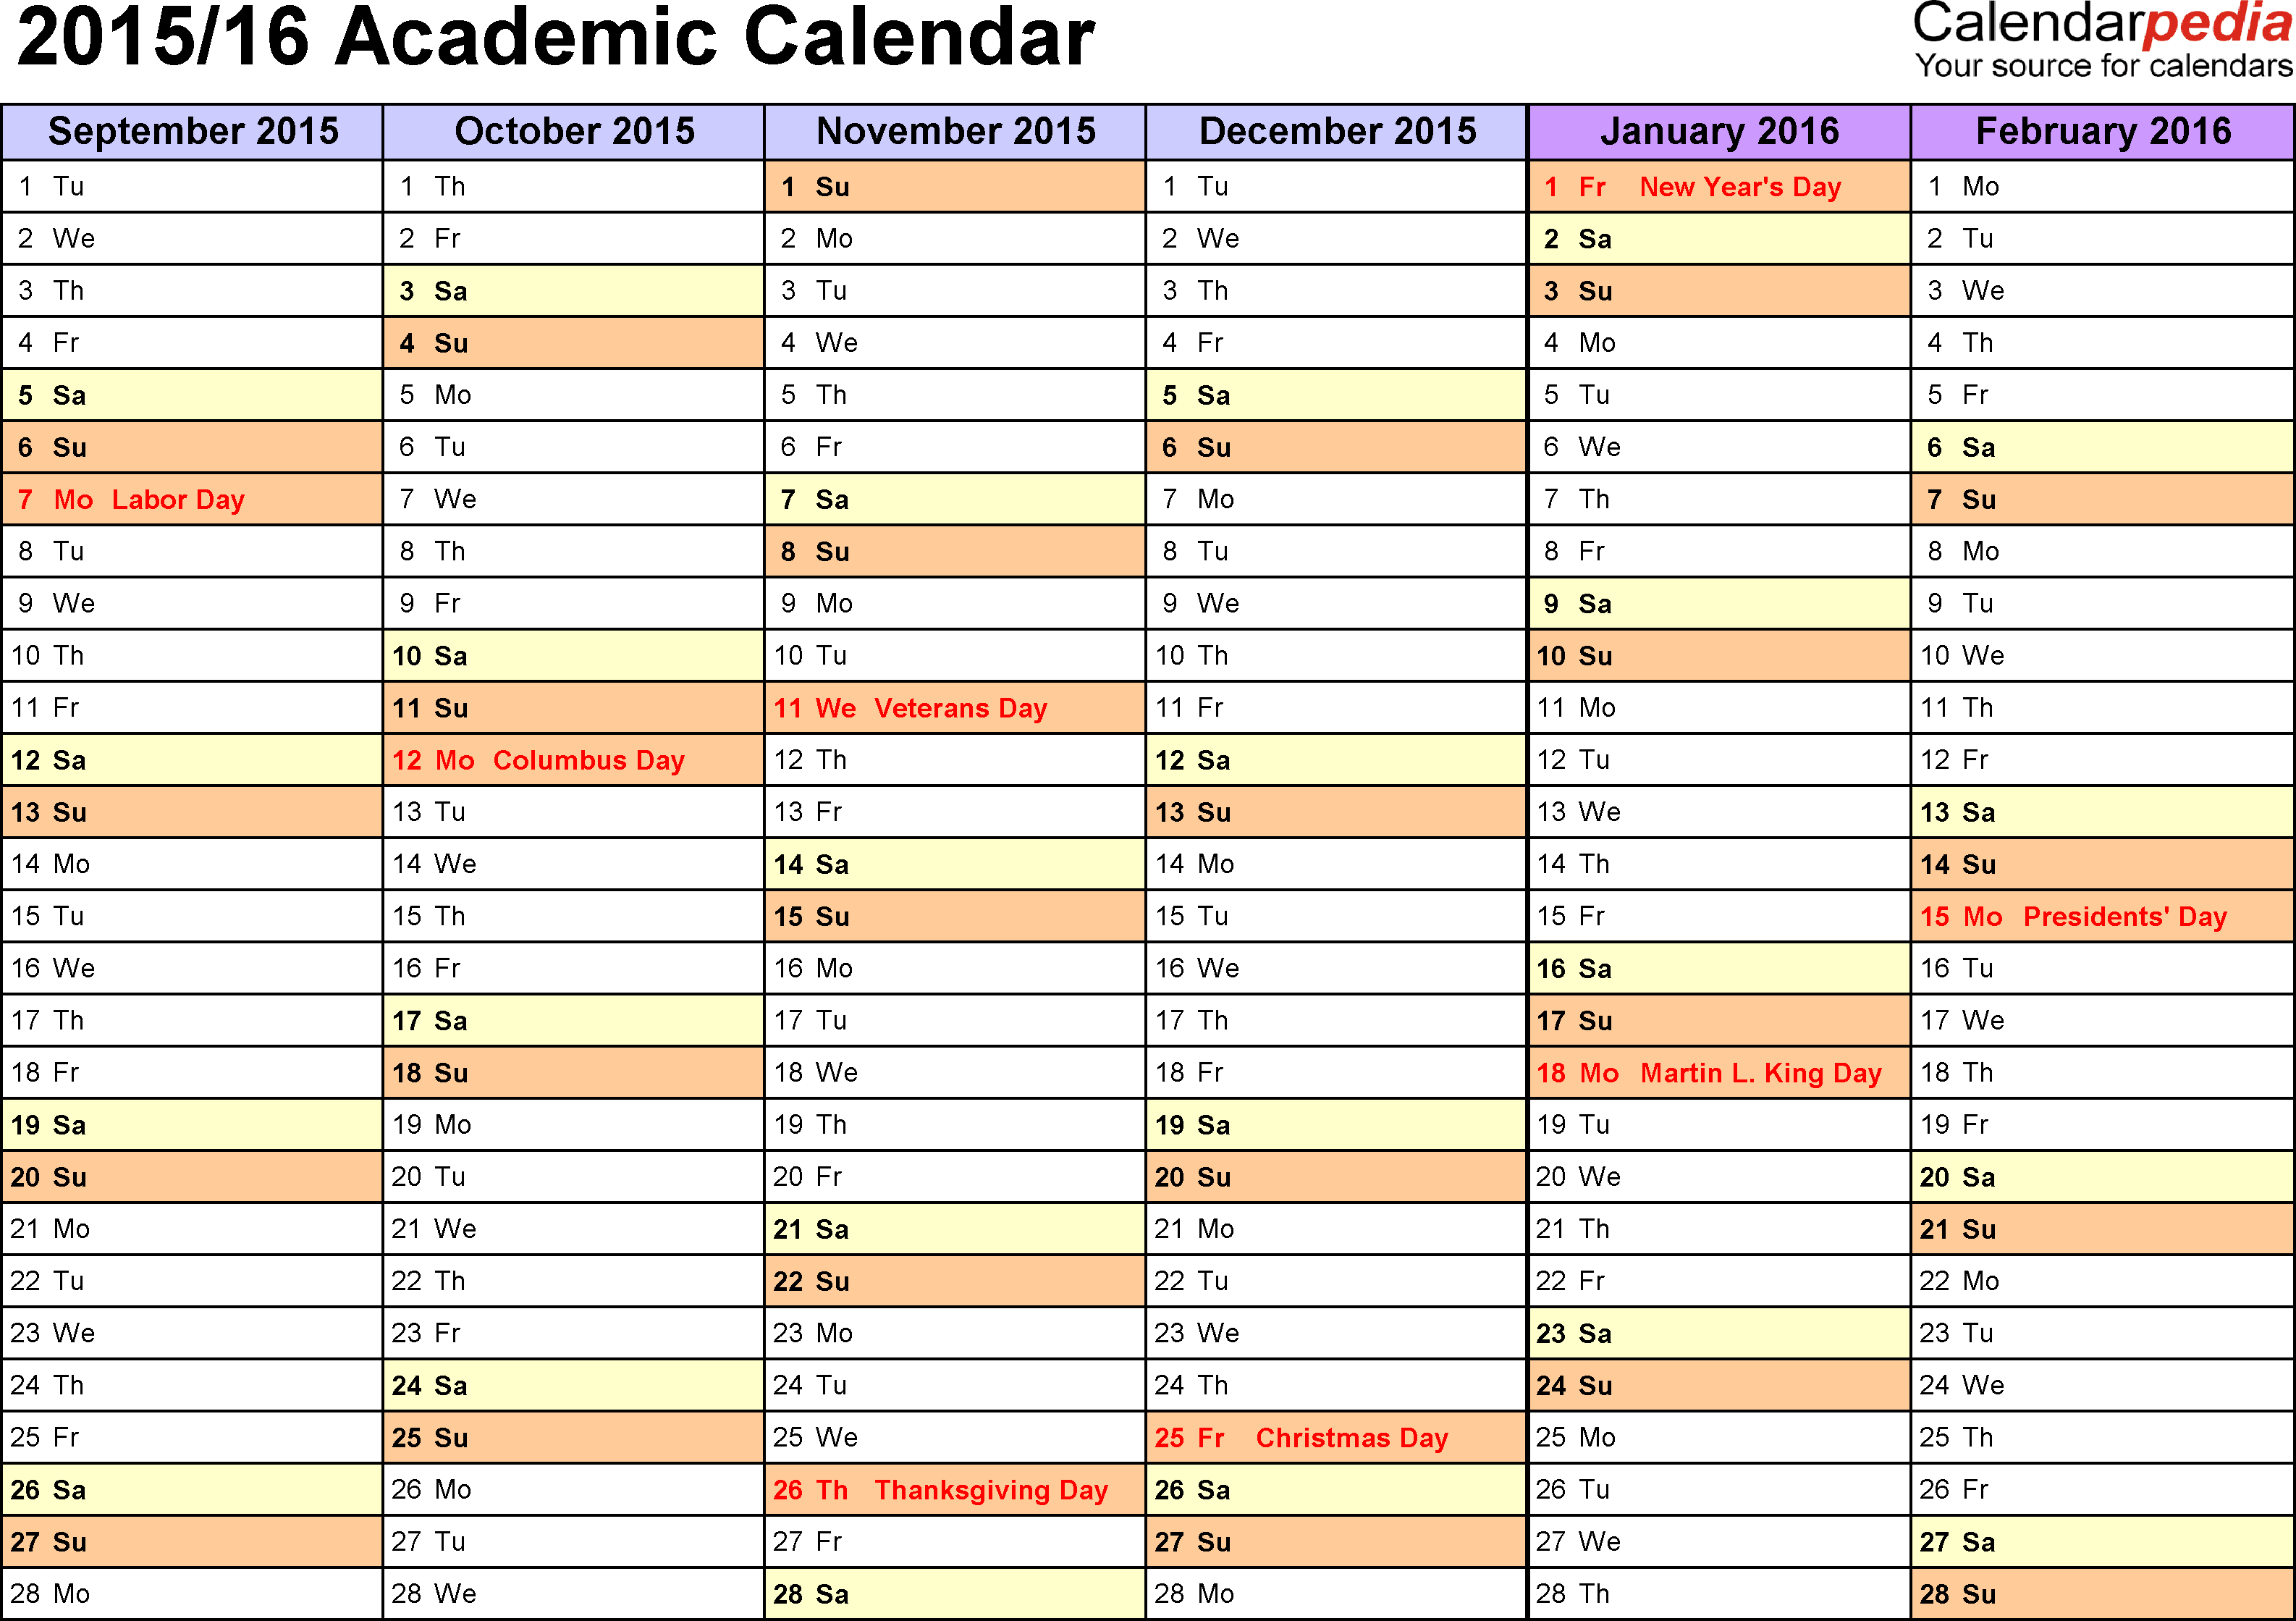 Template 2: Academic calendar 2015/16 for Word, landscape orientation, months horizontally, 2 pages